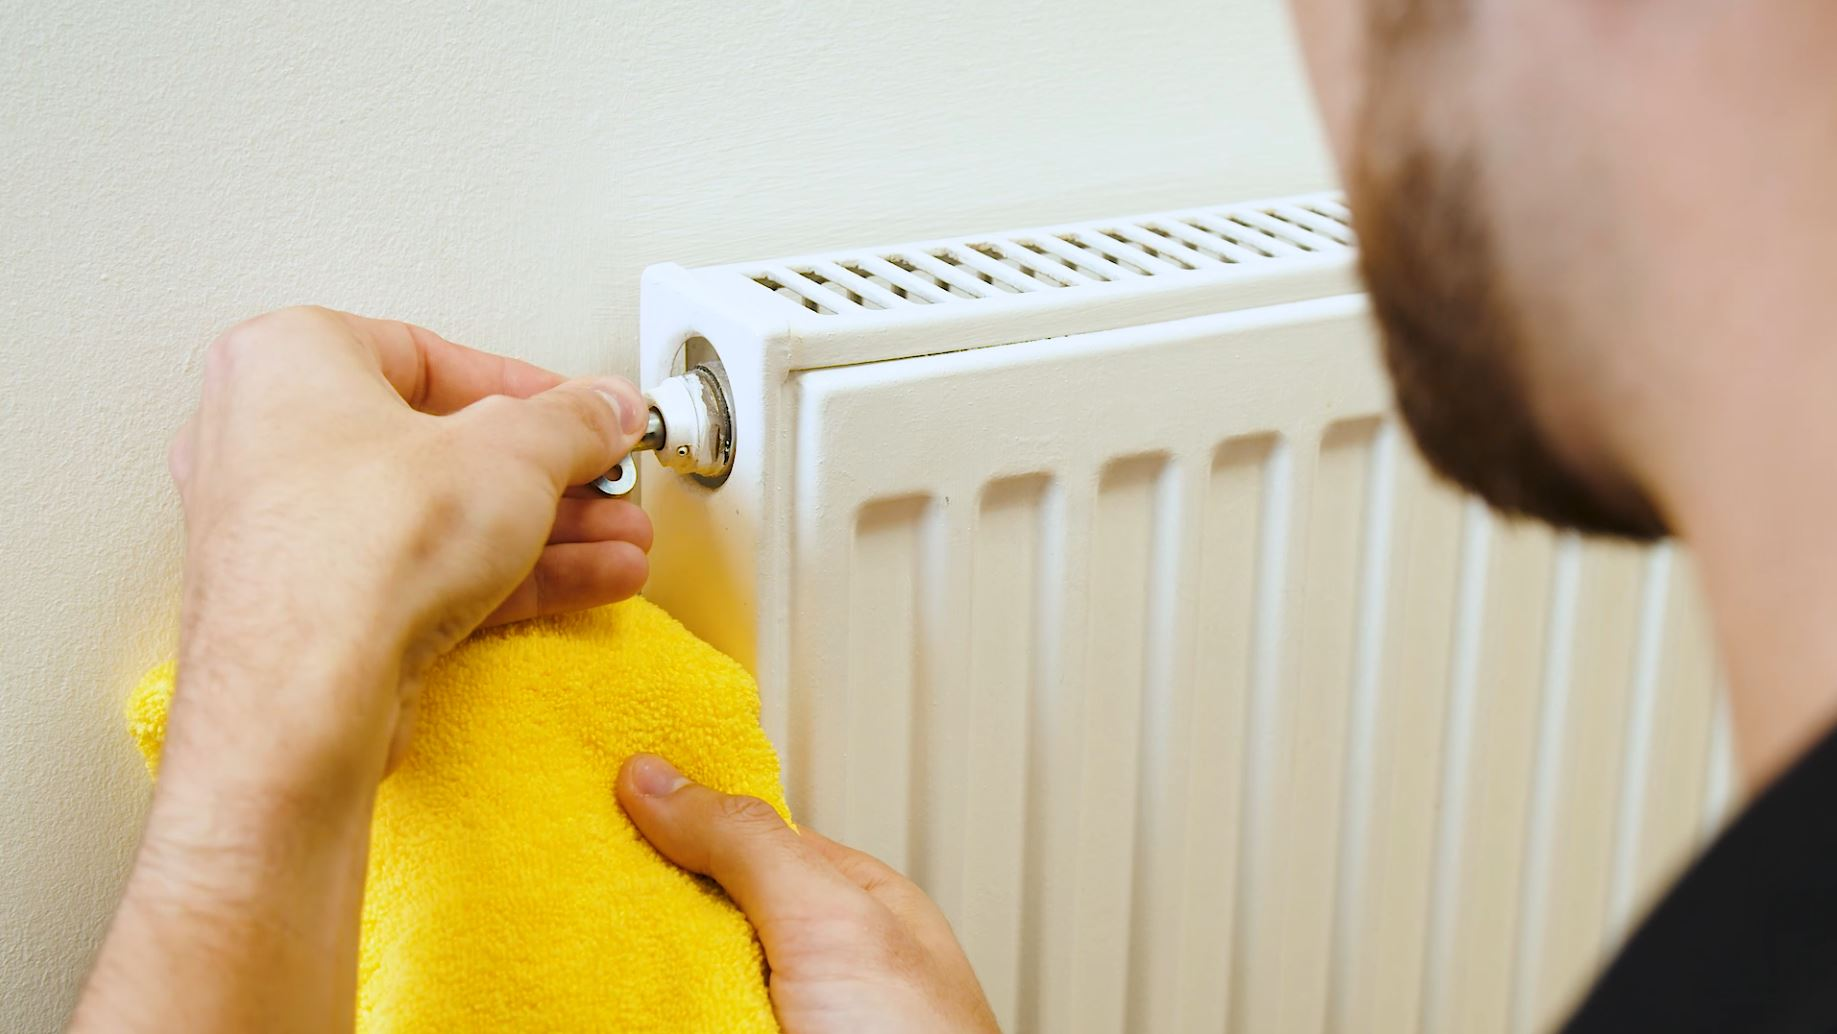 man holding radiator key next to radiator